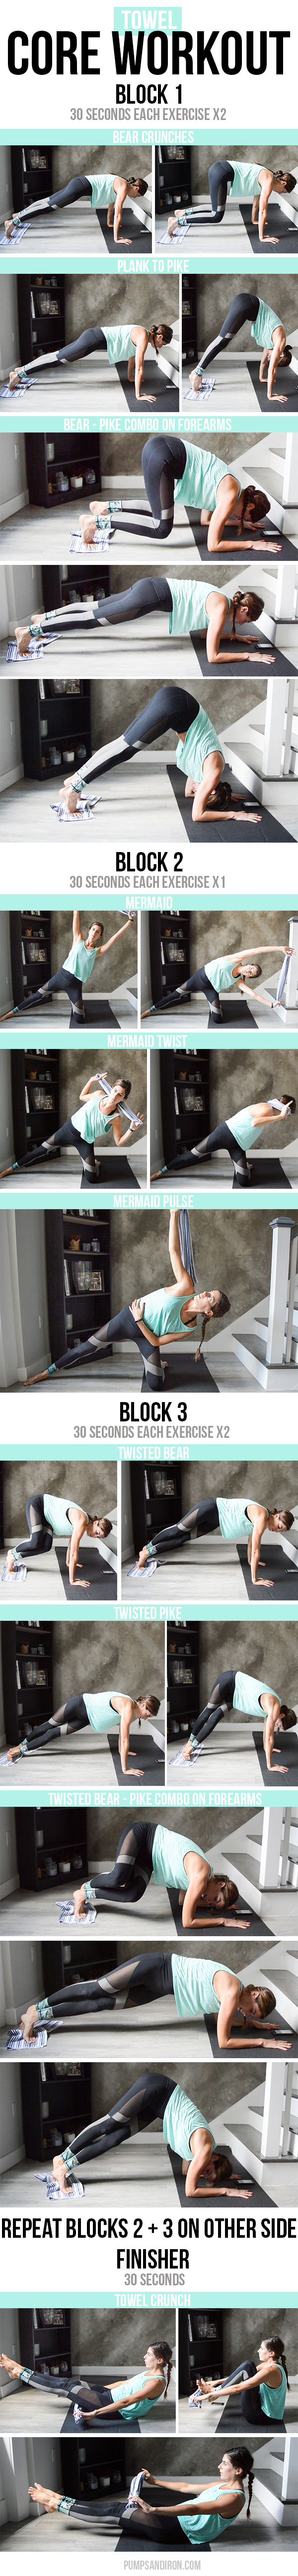 15-Minute Towel Core Workout - a mix of sliding plank work and kneeling core exercises